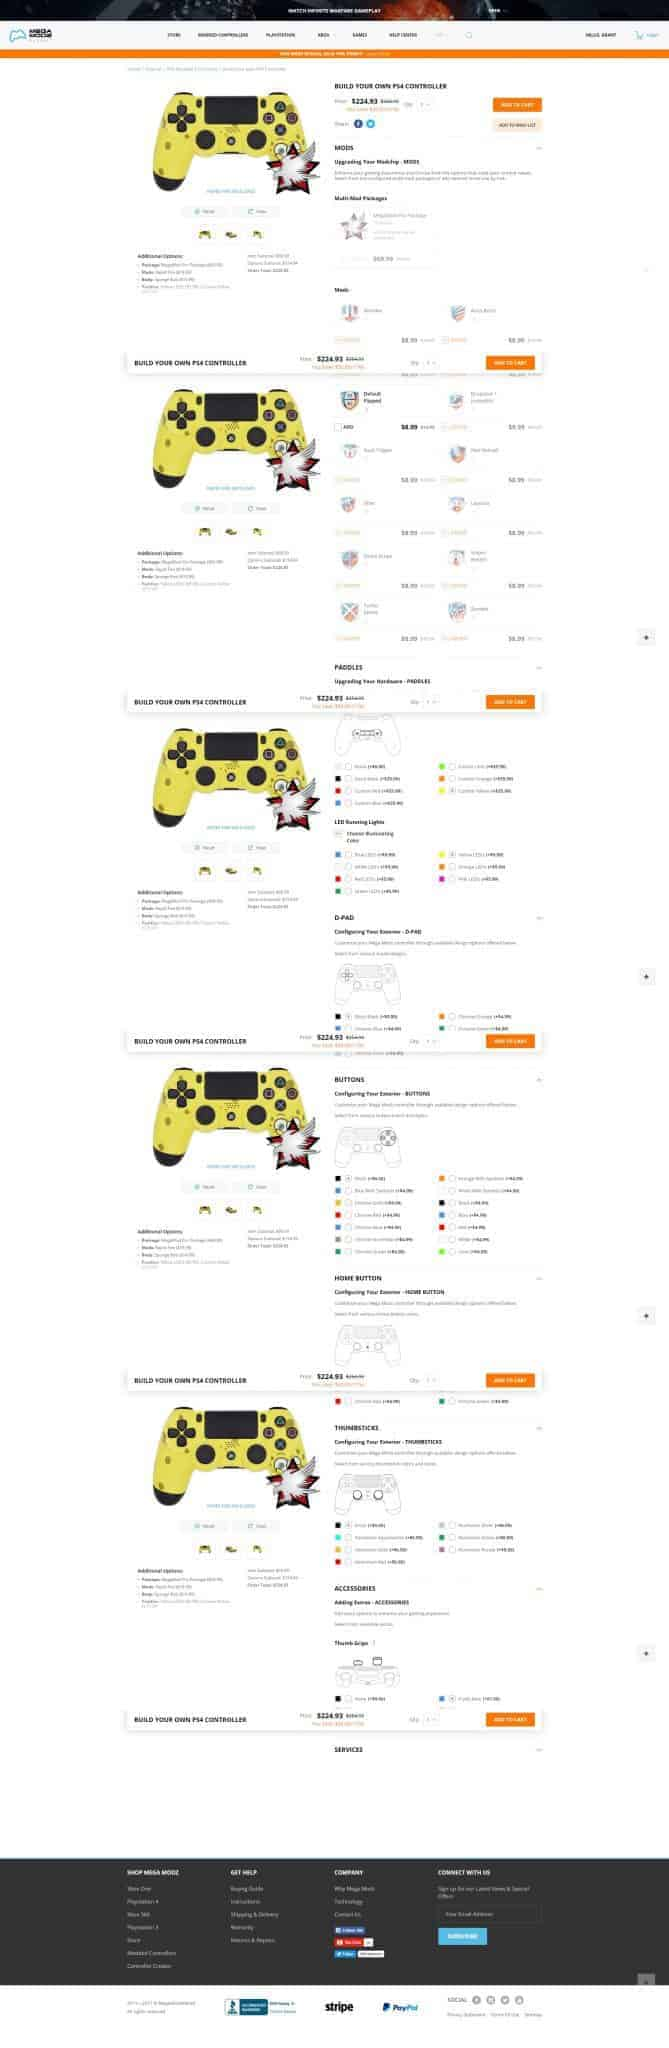 megamodz-ps4cart.png Mega Modz Planet Modded PS4 and Xbox One Controller Review